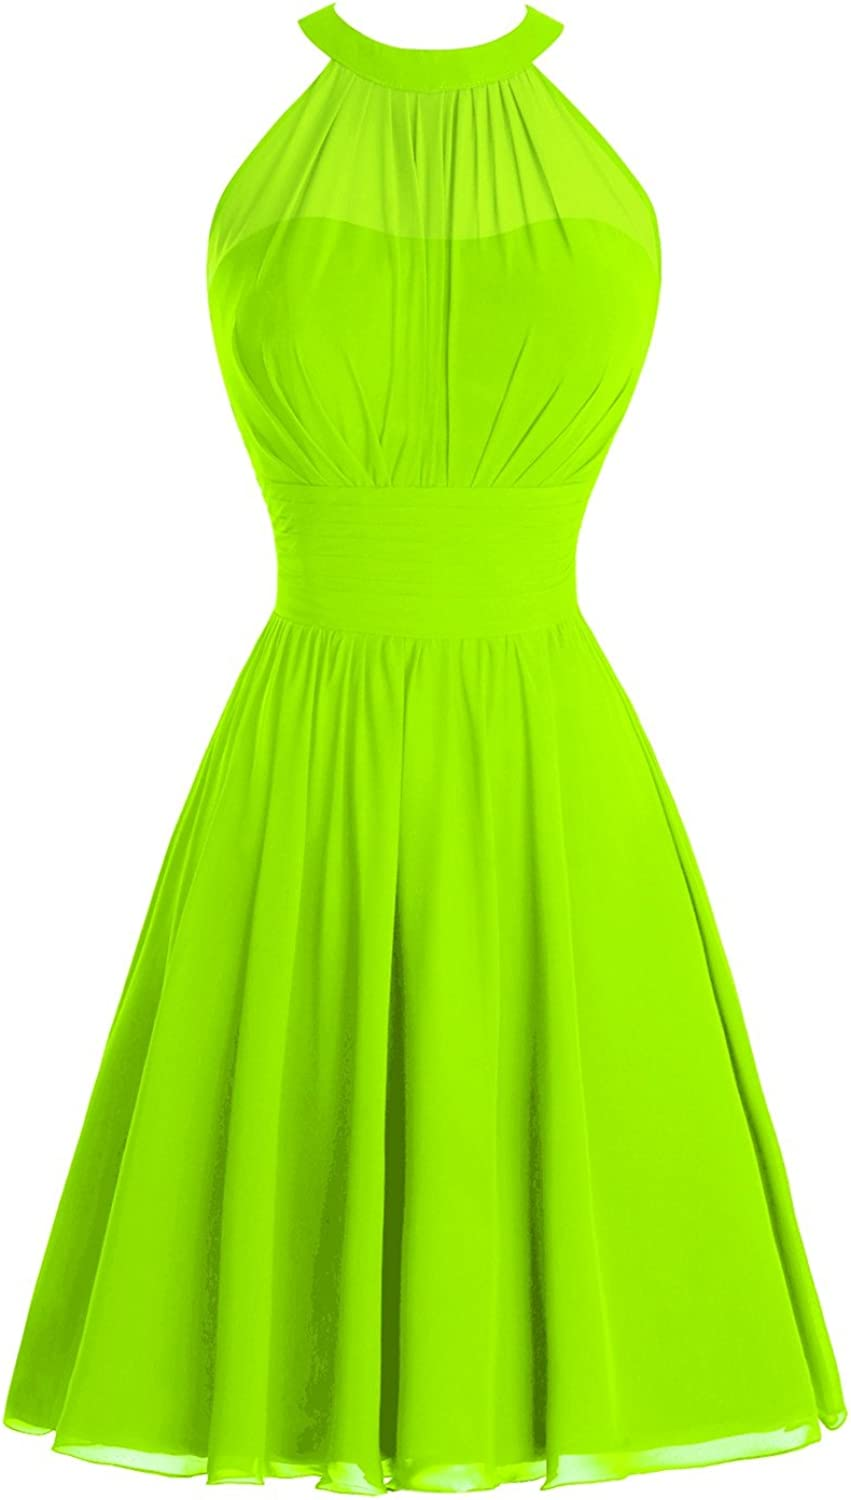 Bess Bridal Women's Halter Ruched Knee Length Short Prom Bridesmaid Party Dress